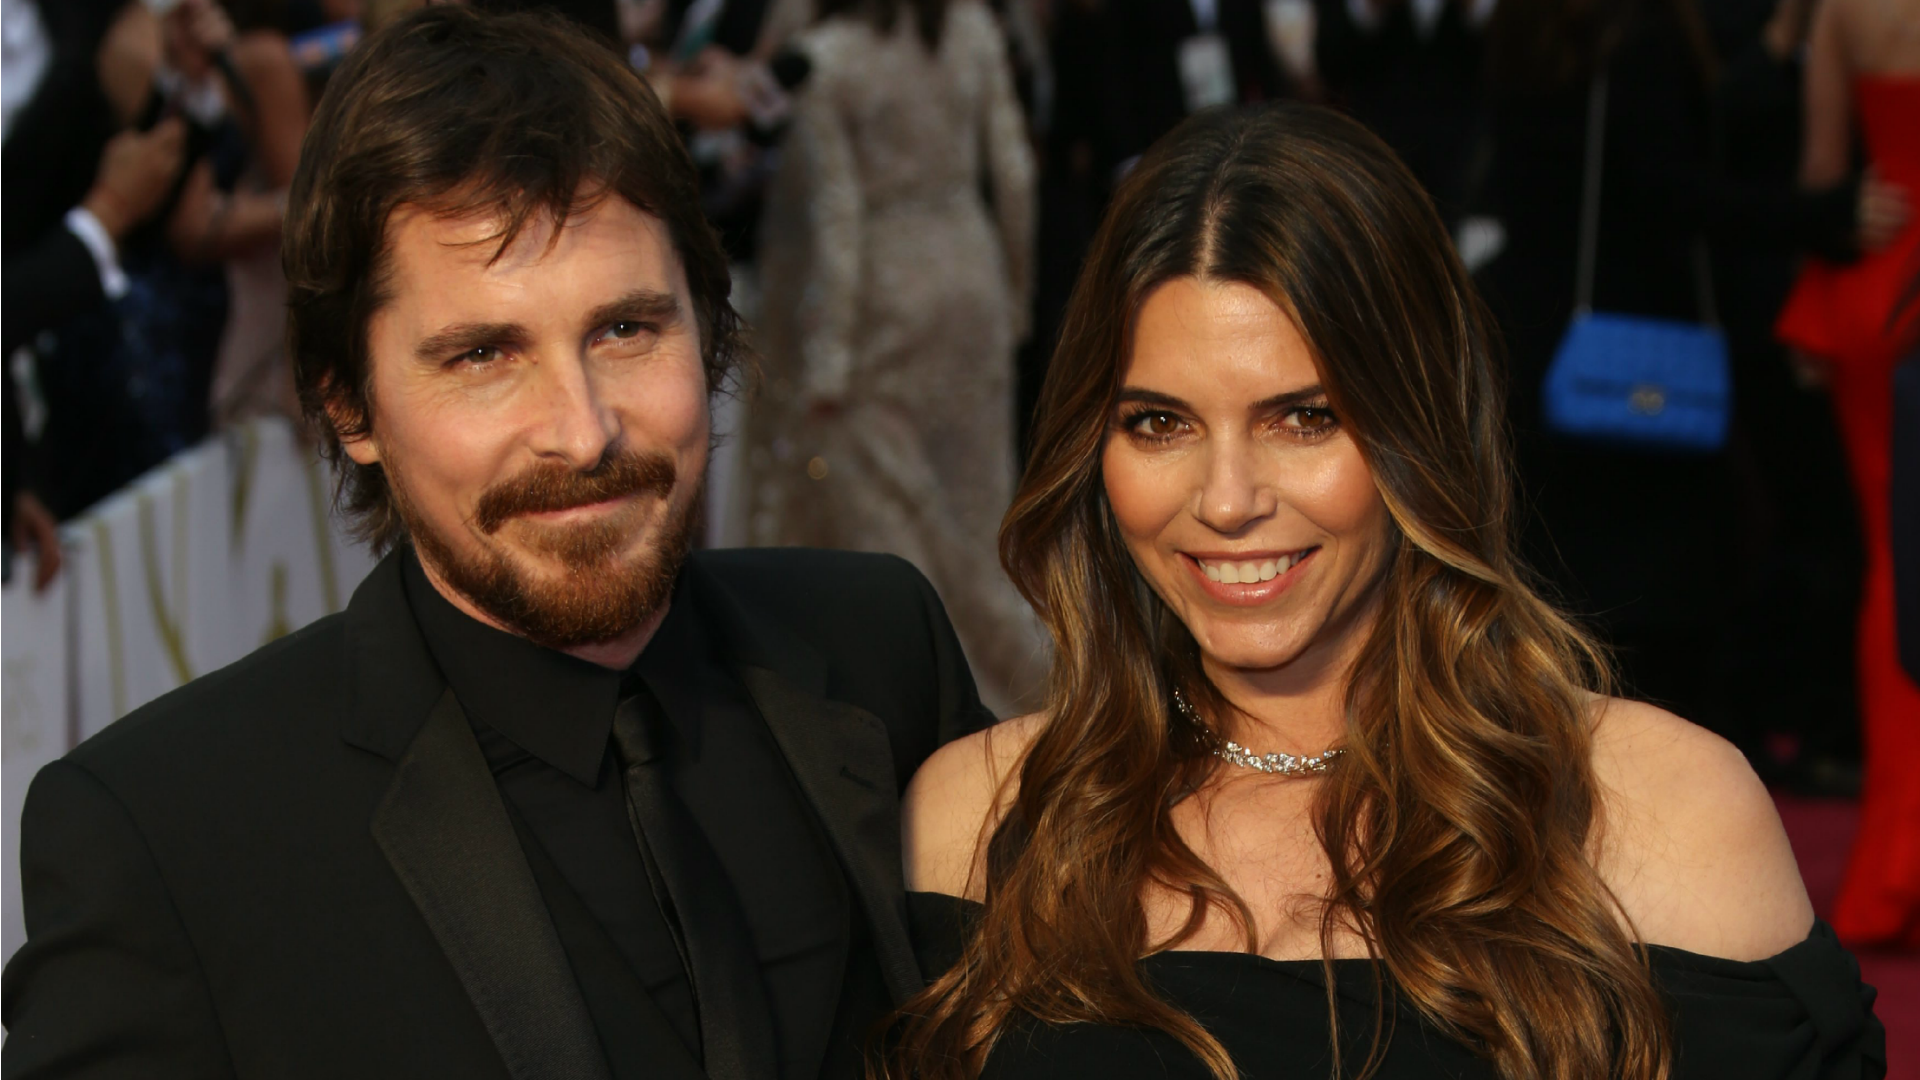 Christian Bale and wife Sibi are parents again